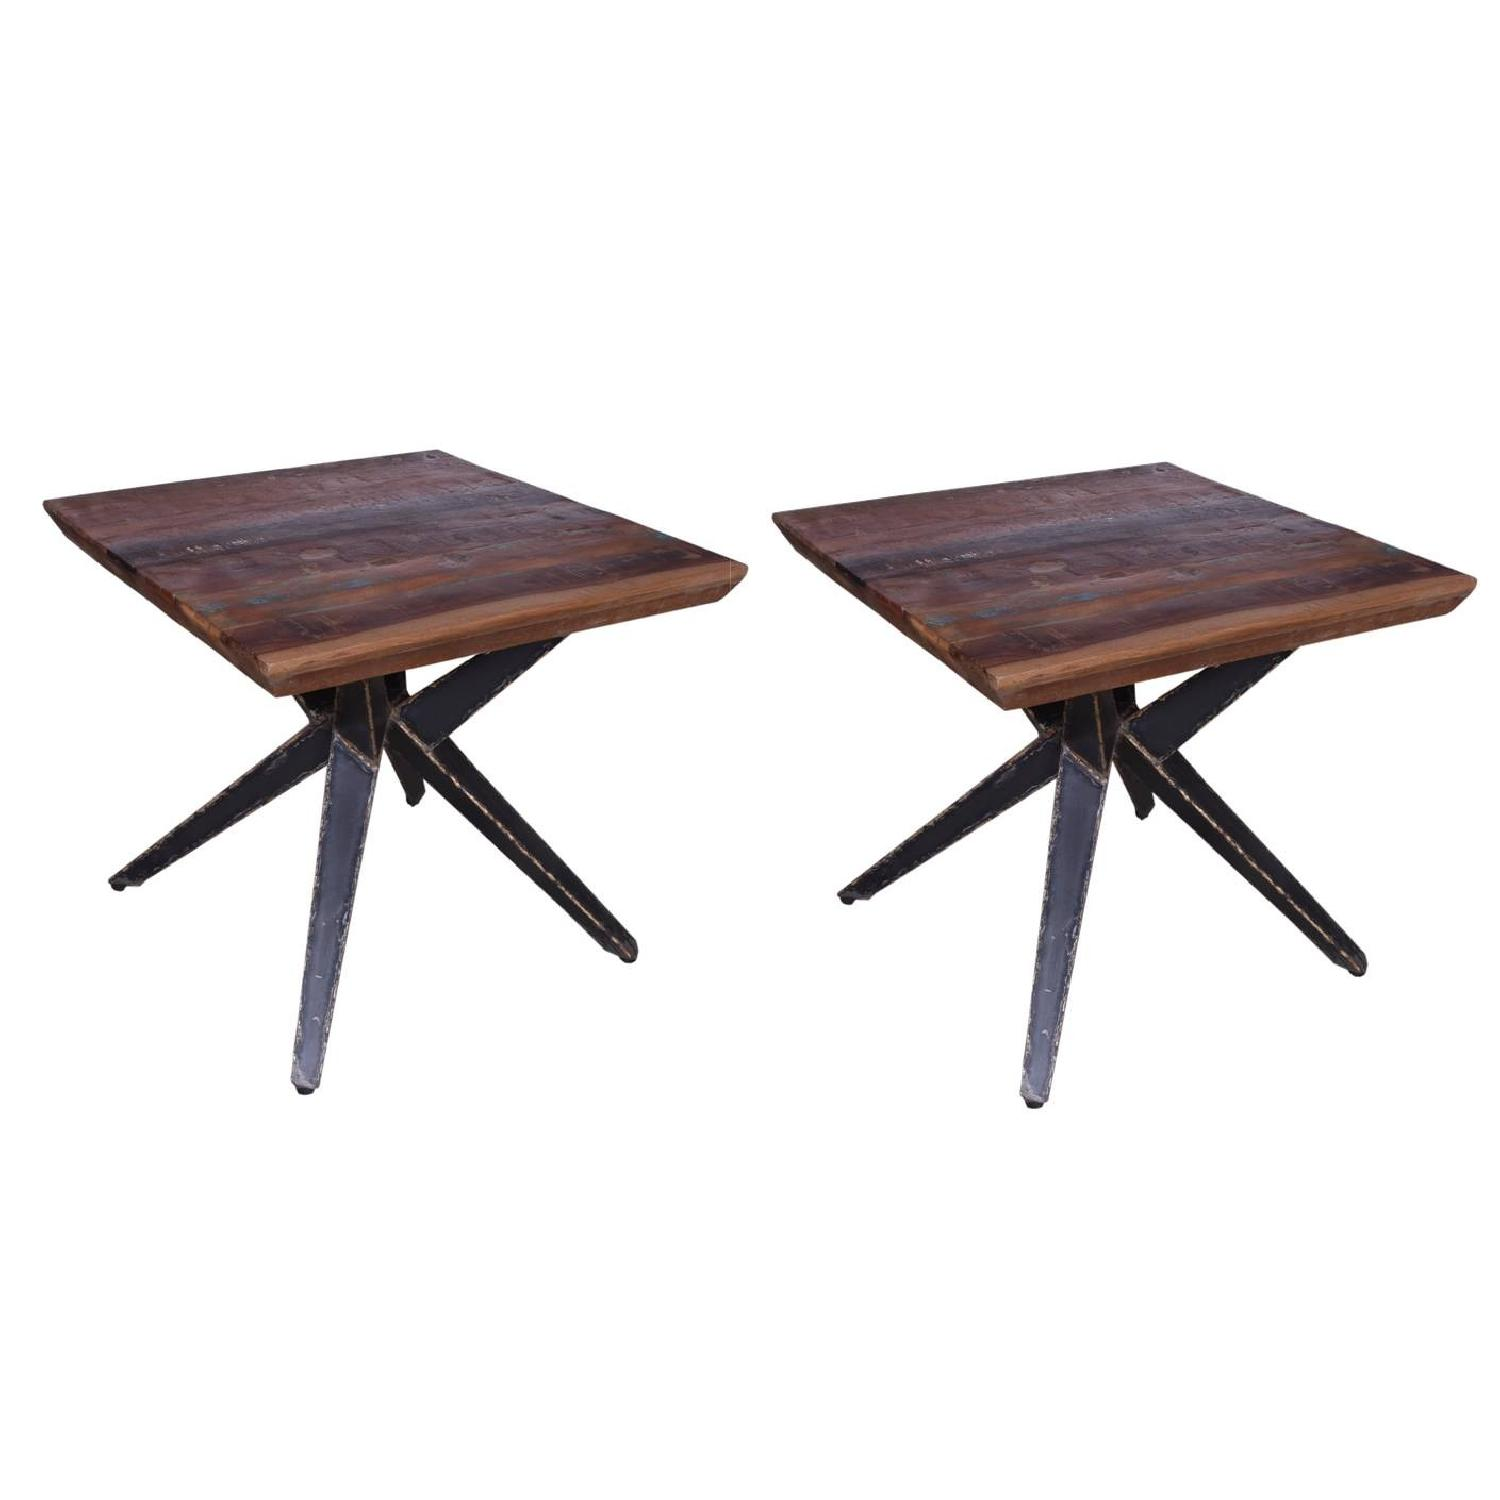 Designe Gallerie Faunia Wooden End Table